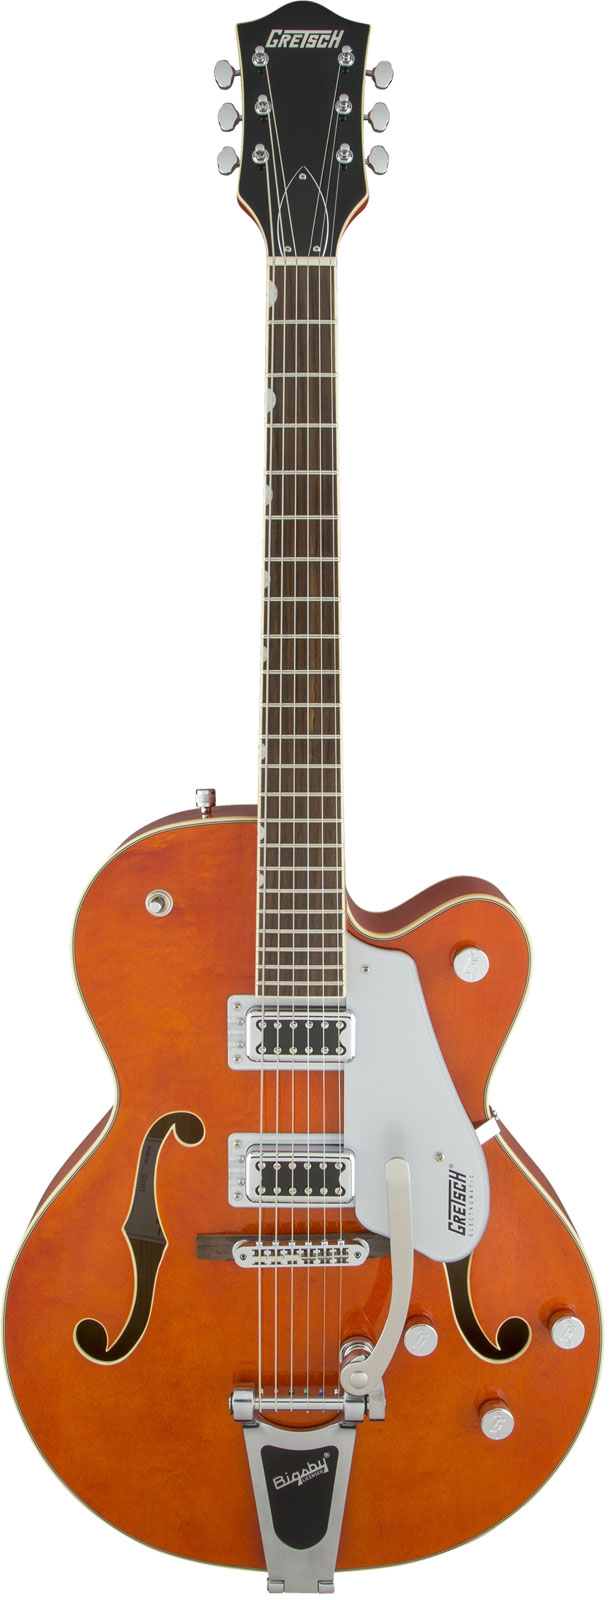 G5420T ELECTROMATIC BIGSBY ORANGE STAIN